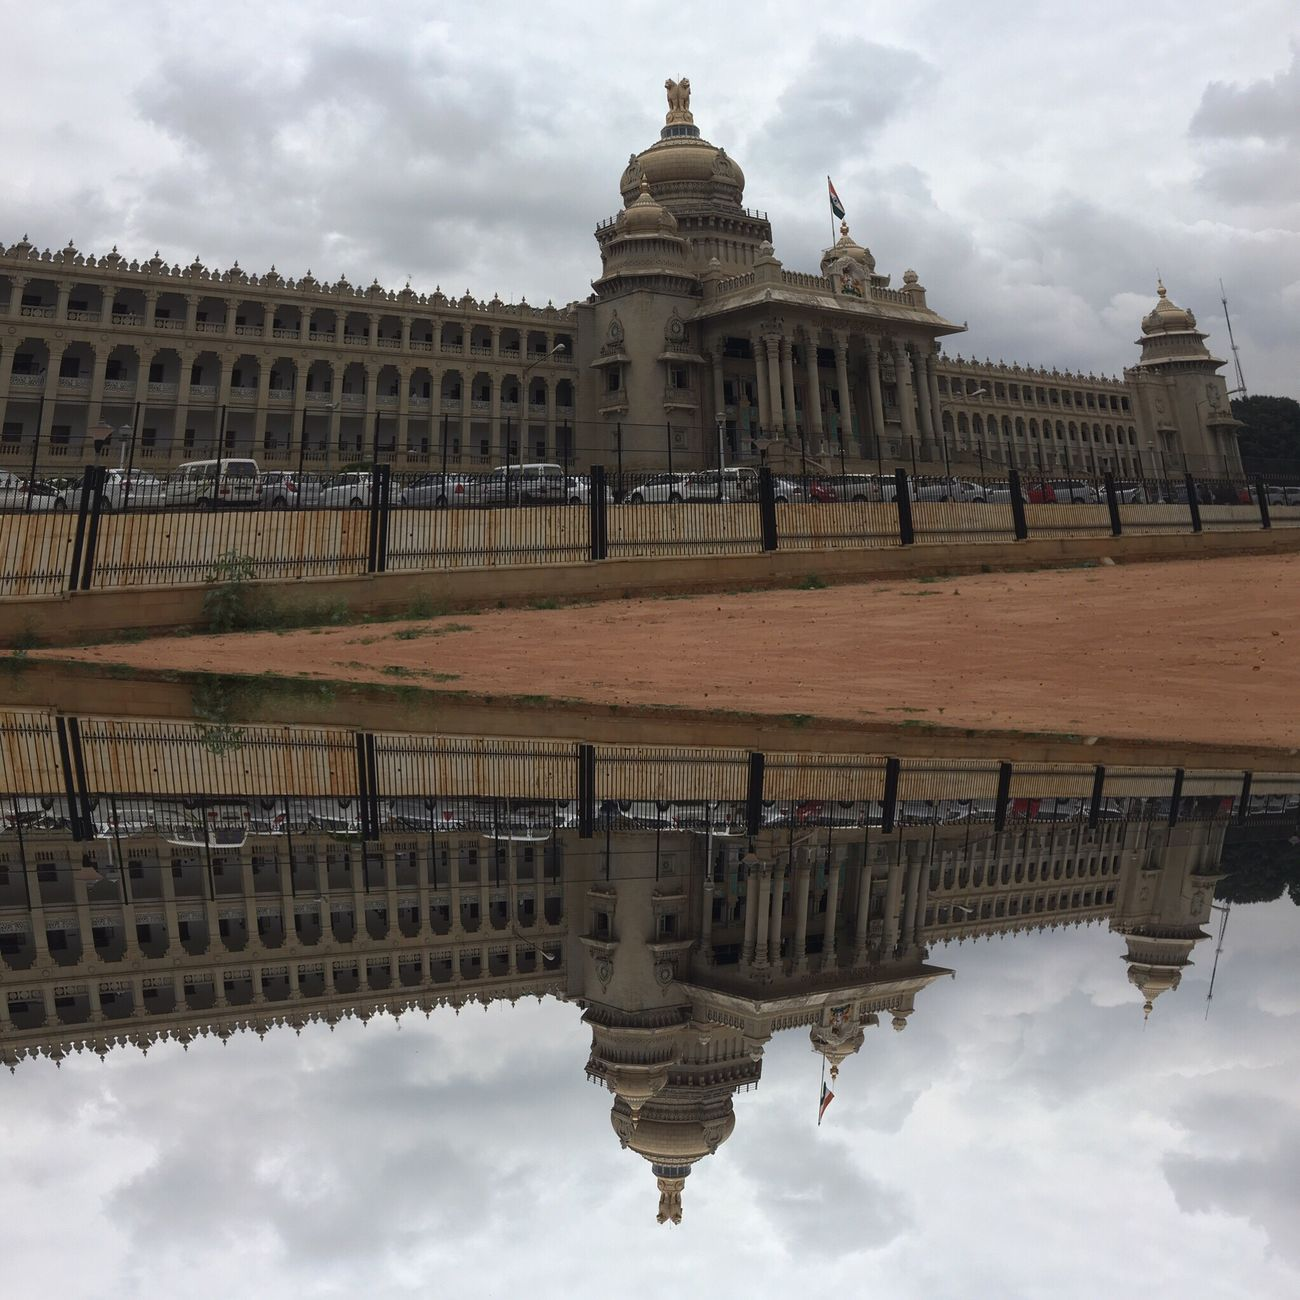 Architecture Built Structure Building Exterior Reflection Sky Cloud Travel Destinations Famous Place Capital Cities  International Landmark Blorediaries Vidhanasoudha IPhoneography